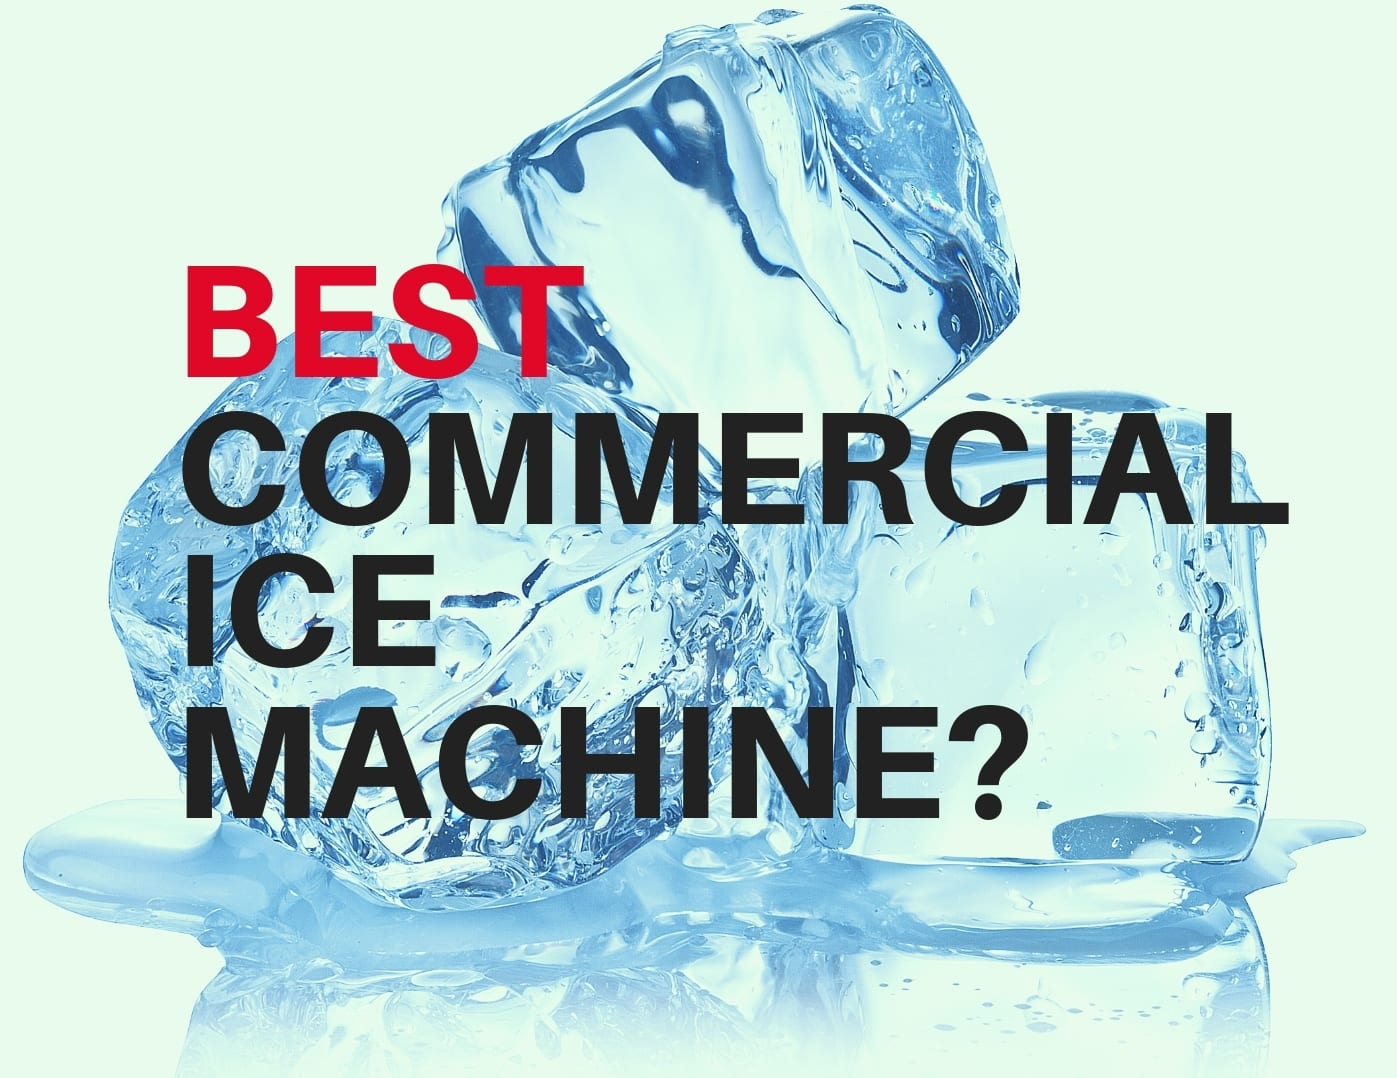 BEST-COMMERCIAL-ICE-MACHINE-TN